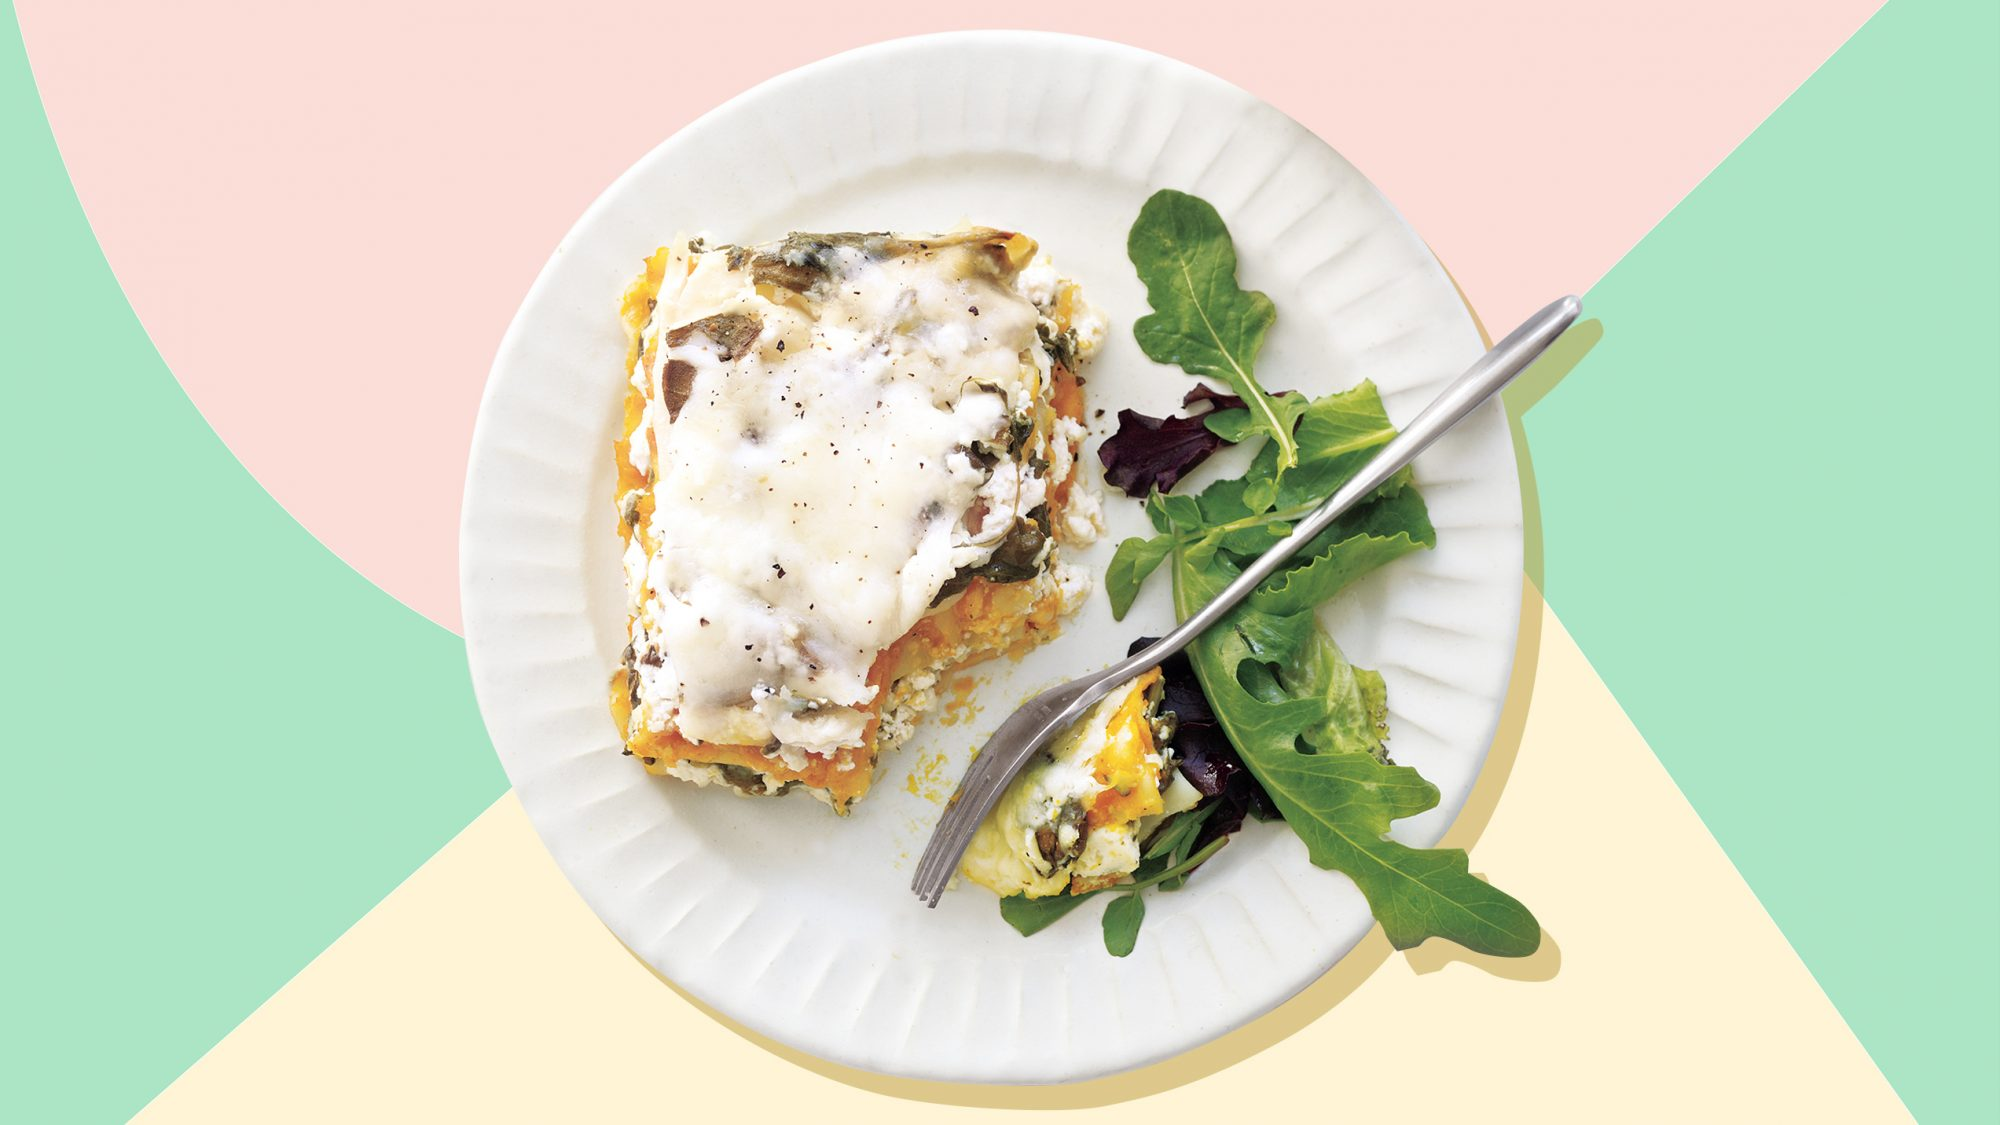 10 Delicious Lasagna Recipes for the Ultimate One-Dish Meal